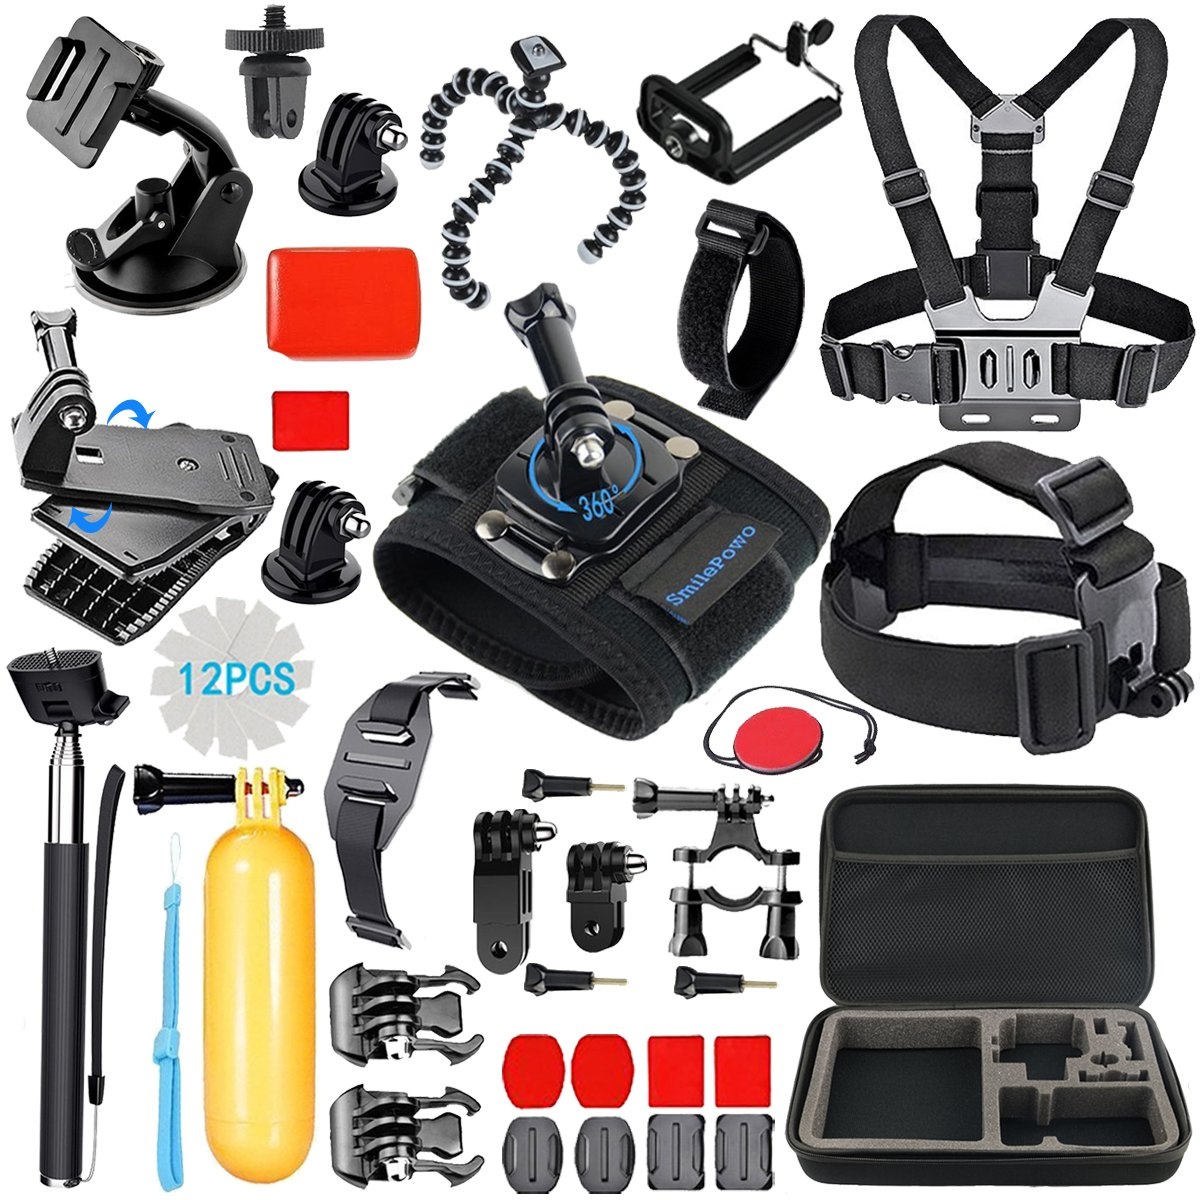 SmilePowo Sports Action Camera Accessory Kit for GoPro Hero 6